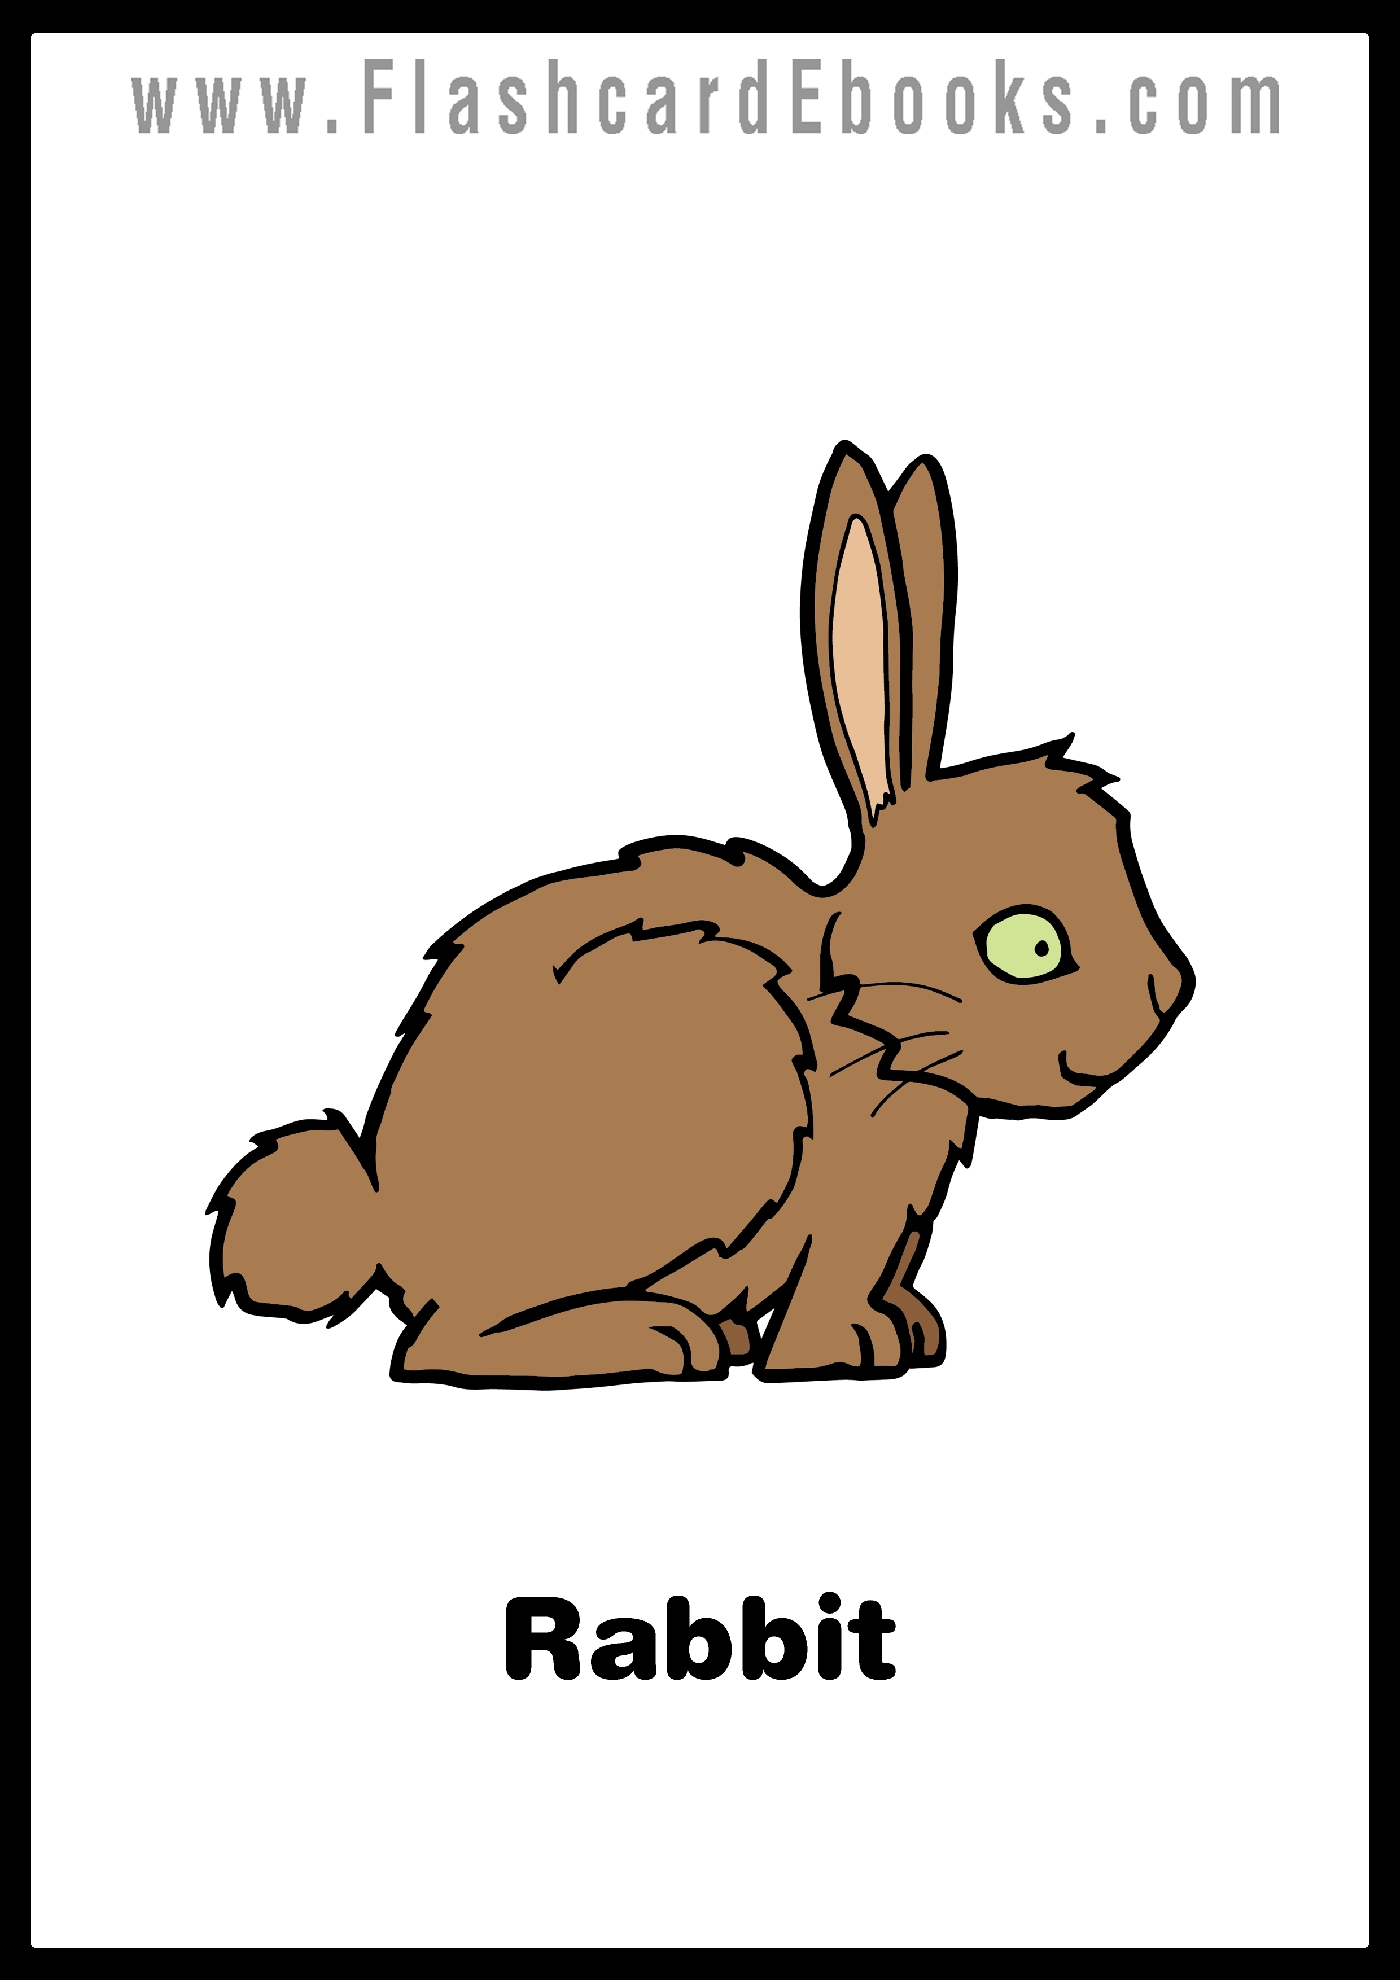 English Flashcard Kindle Animals Rabbits